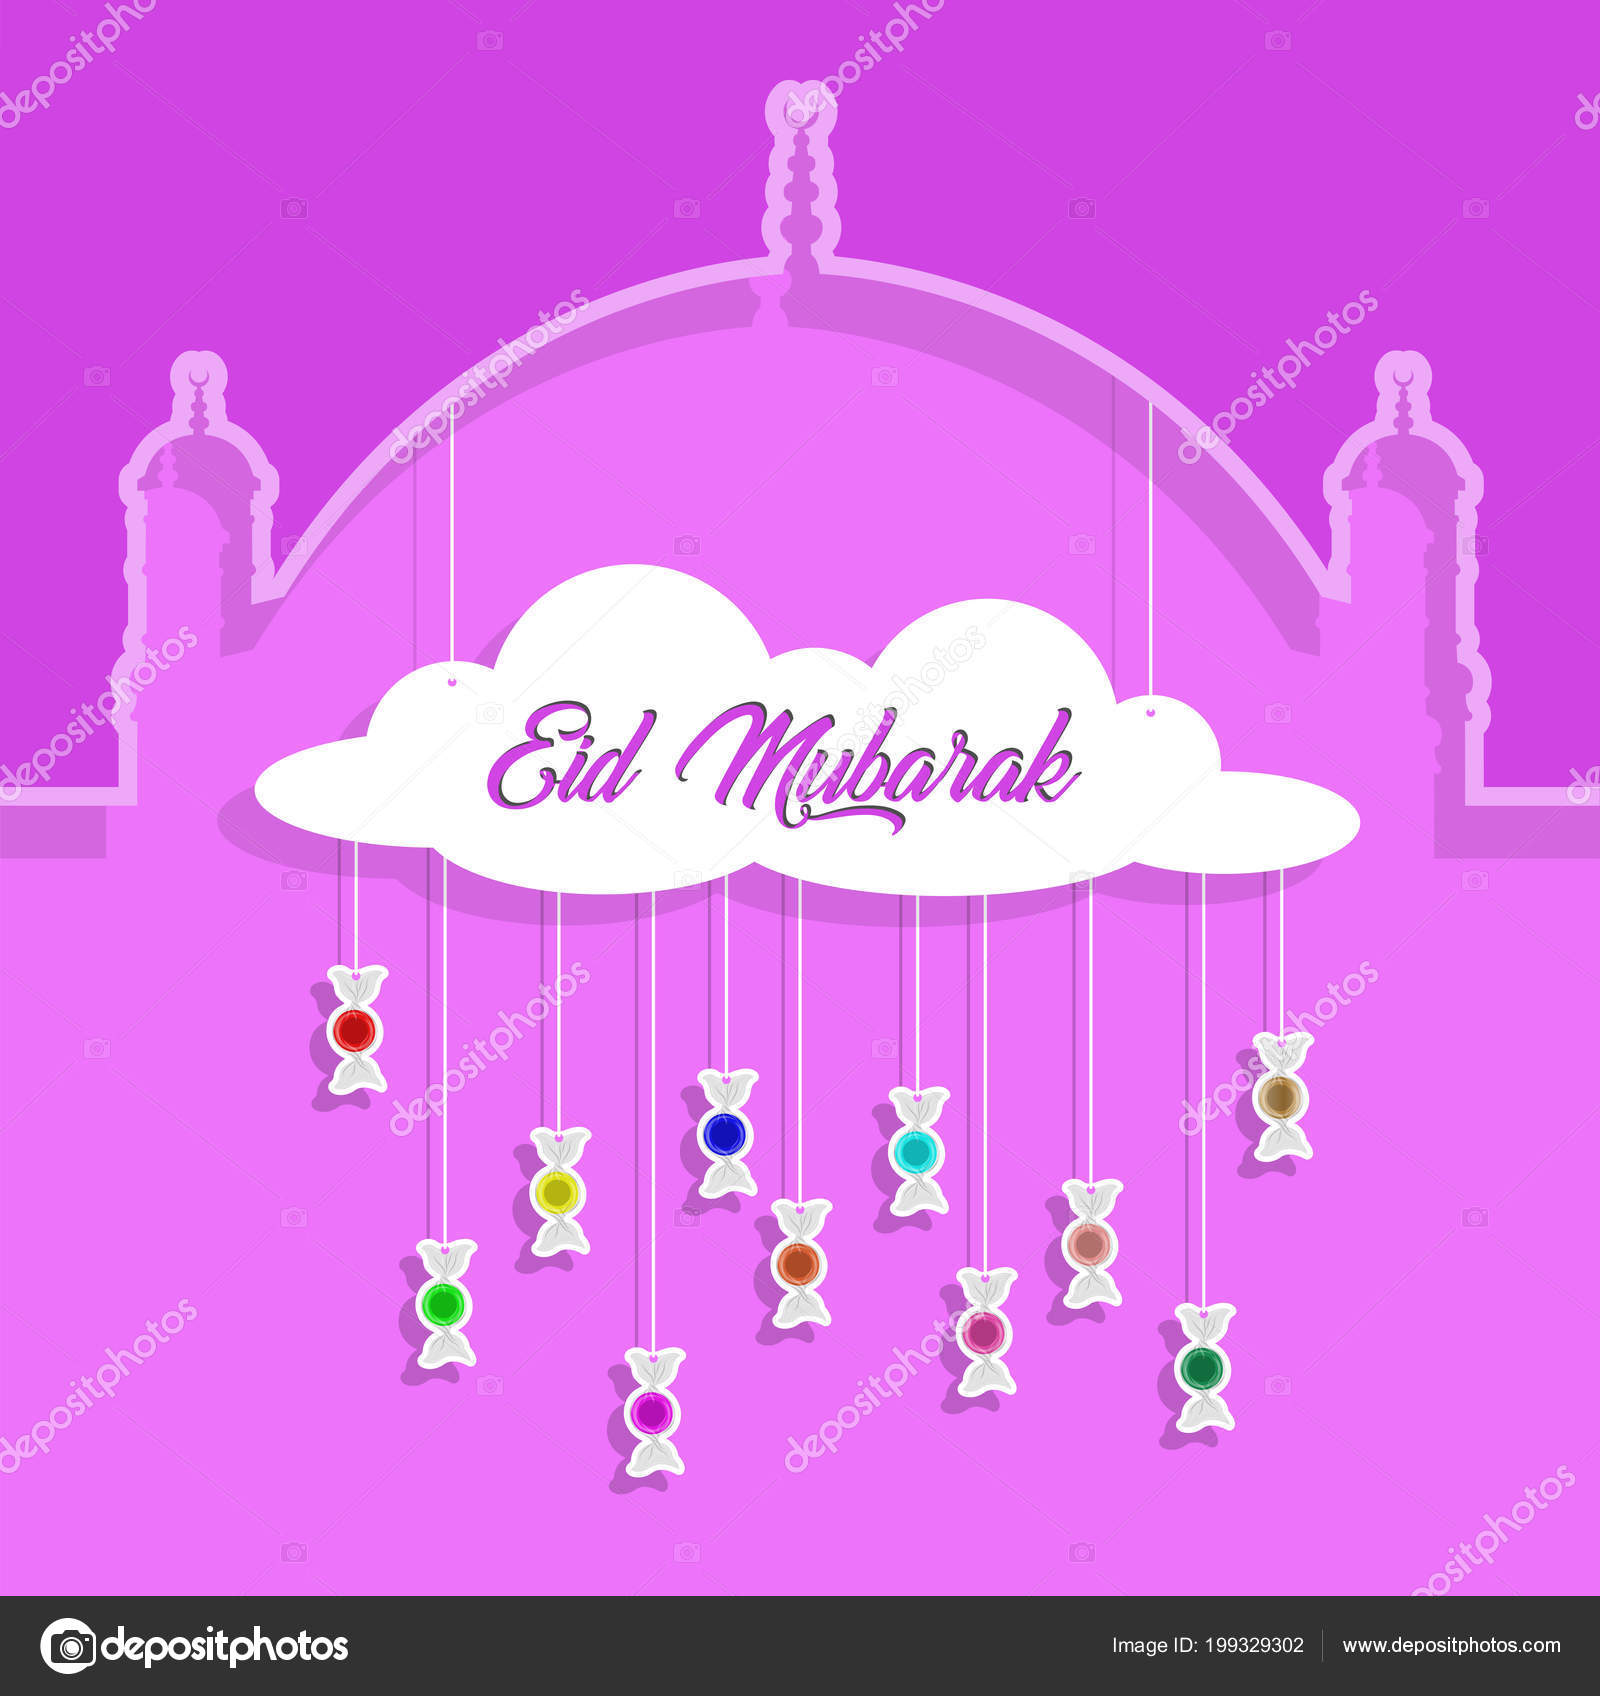 Eid mubarak greeting paper cut out bonbons all objects different eid mubarak greeting with paper cut out bonbons all the objects are in different layers and the text types do not need any font vector by brushpiquetr m4hsunfo